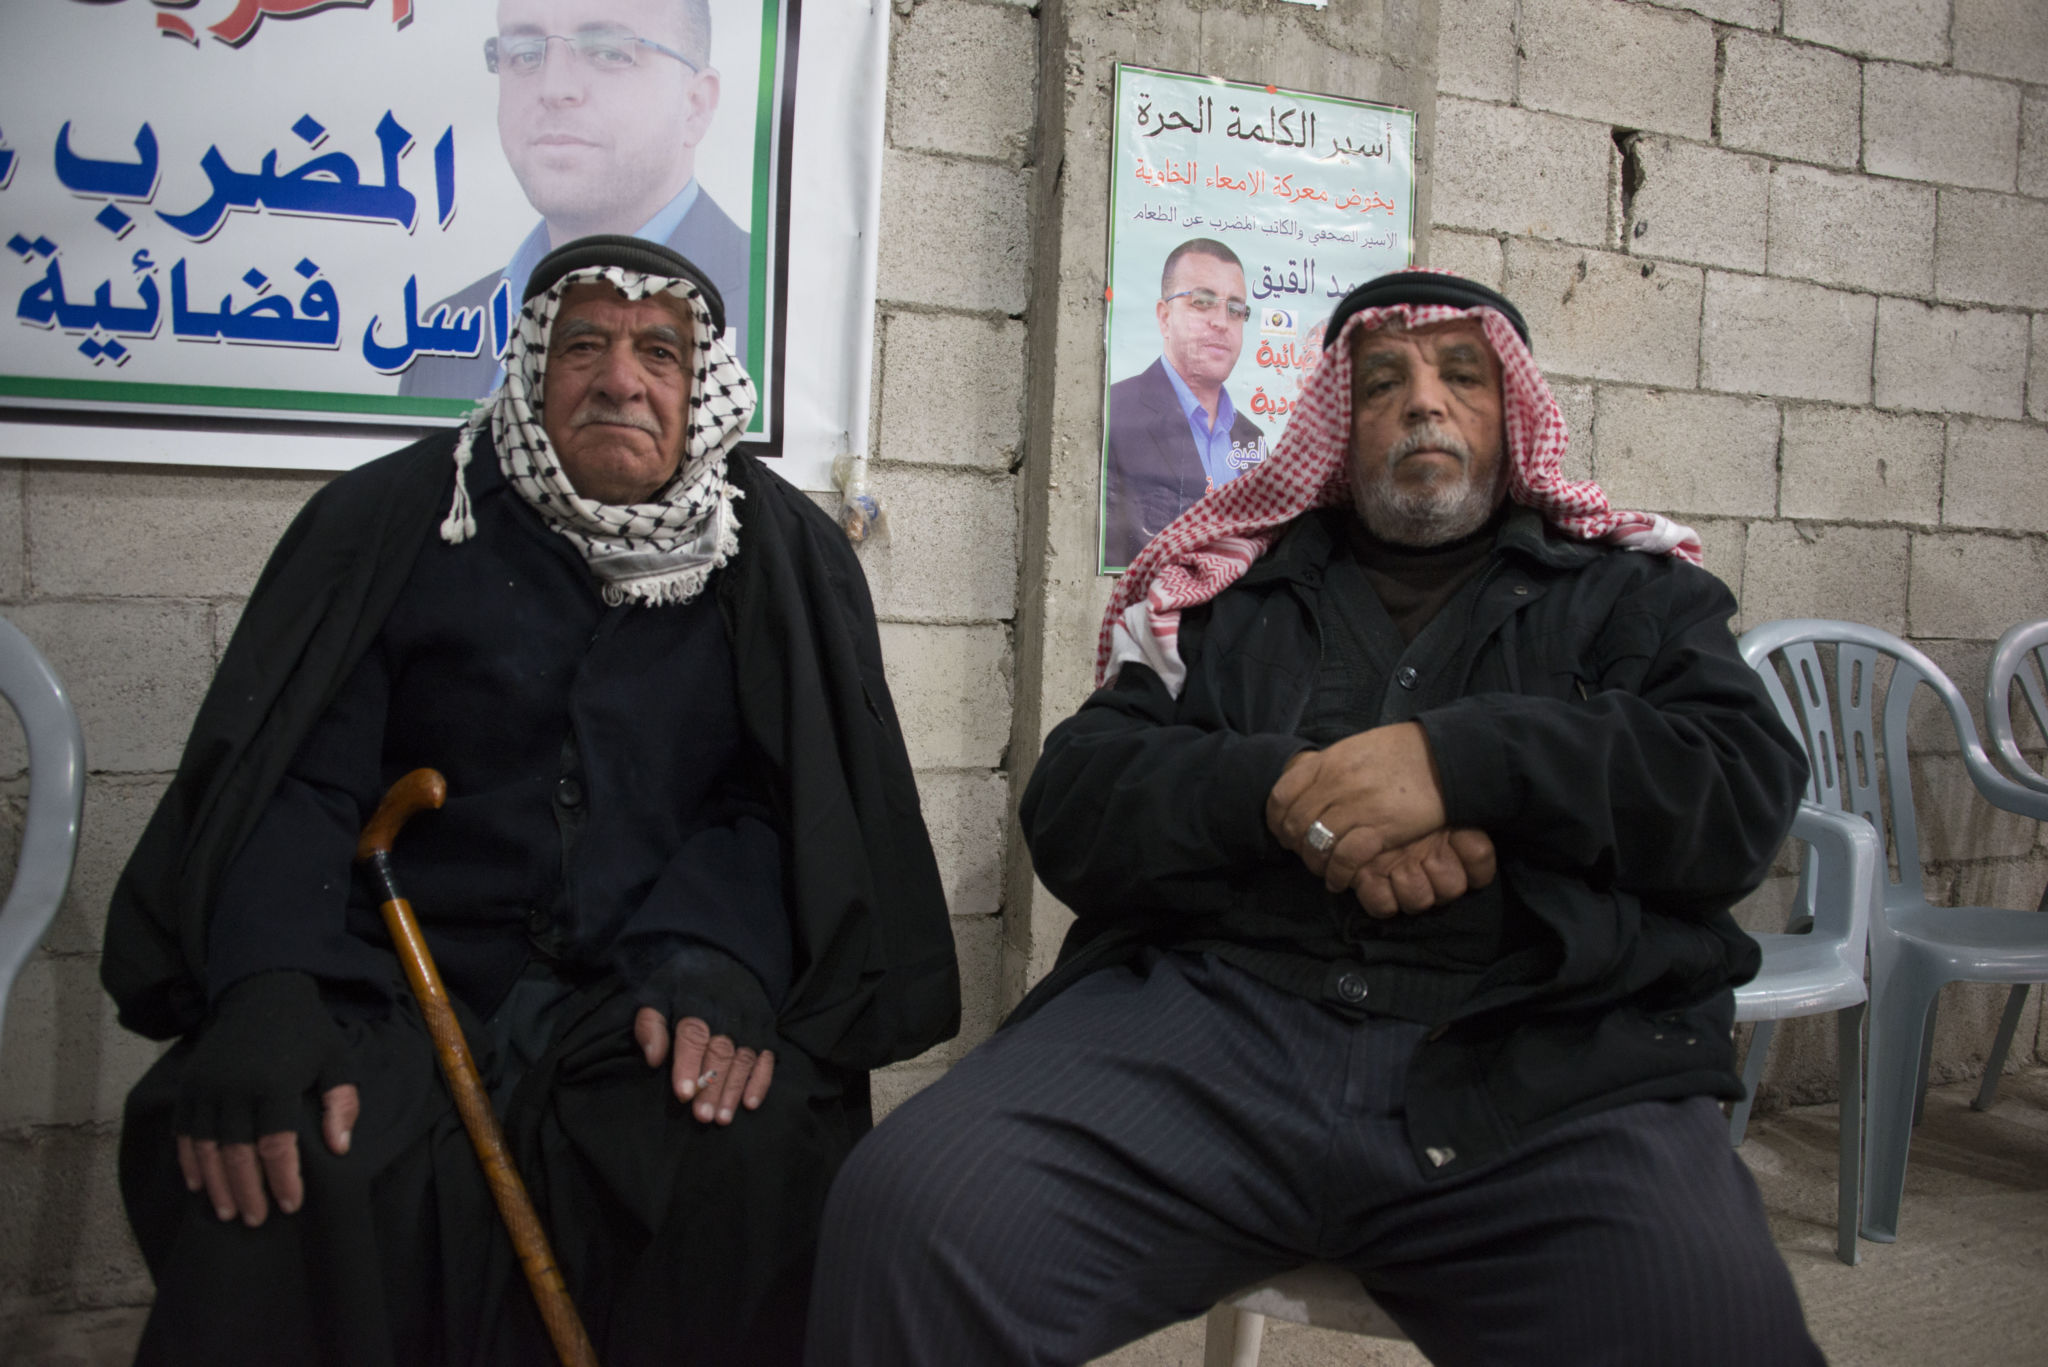 al-Qiq's father (right) and another relative. Photo by Jordan Siegel